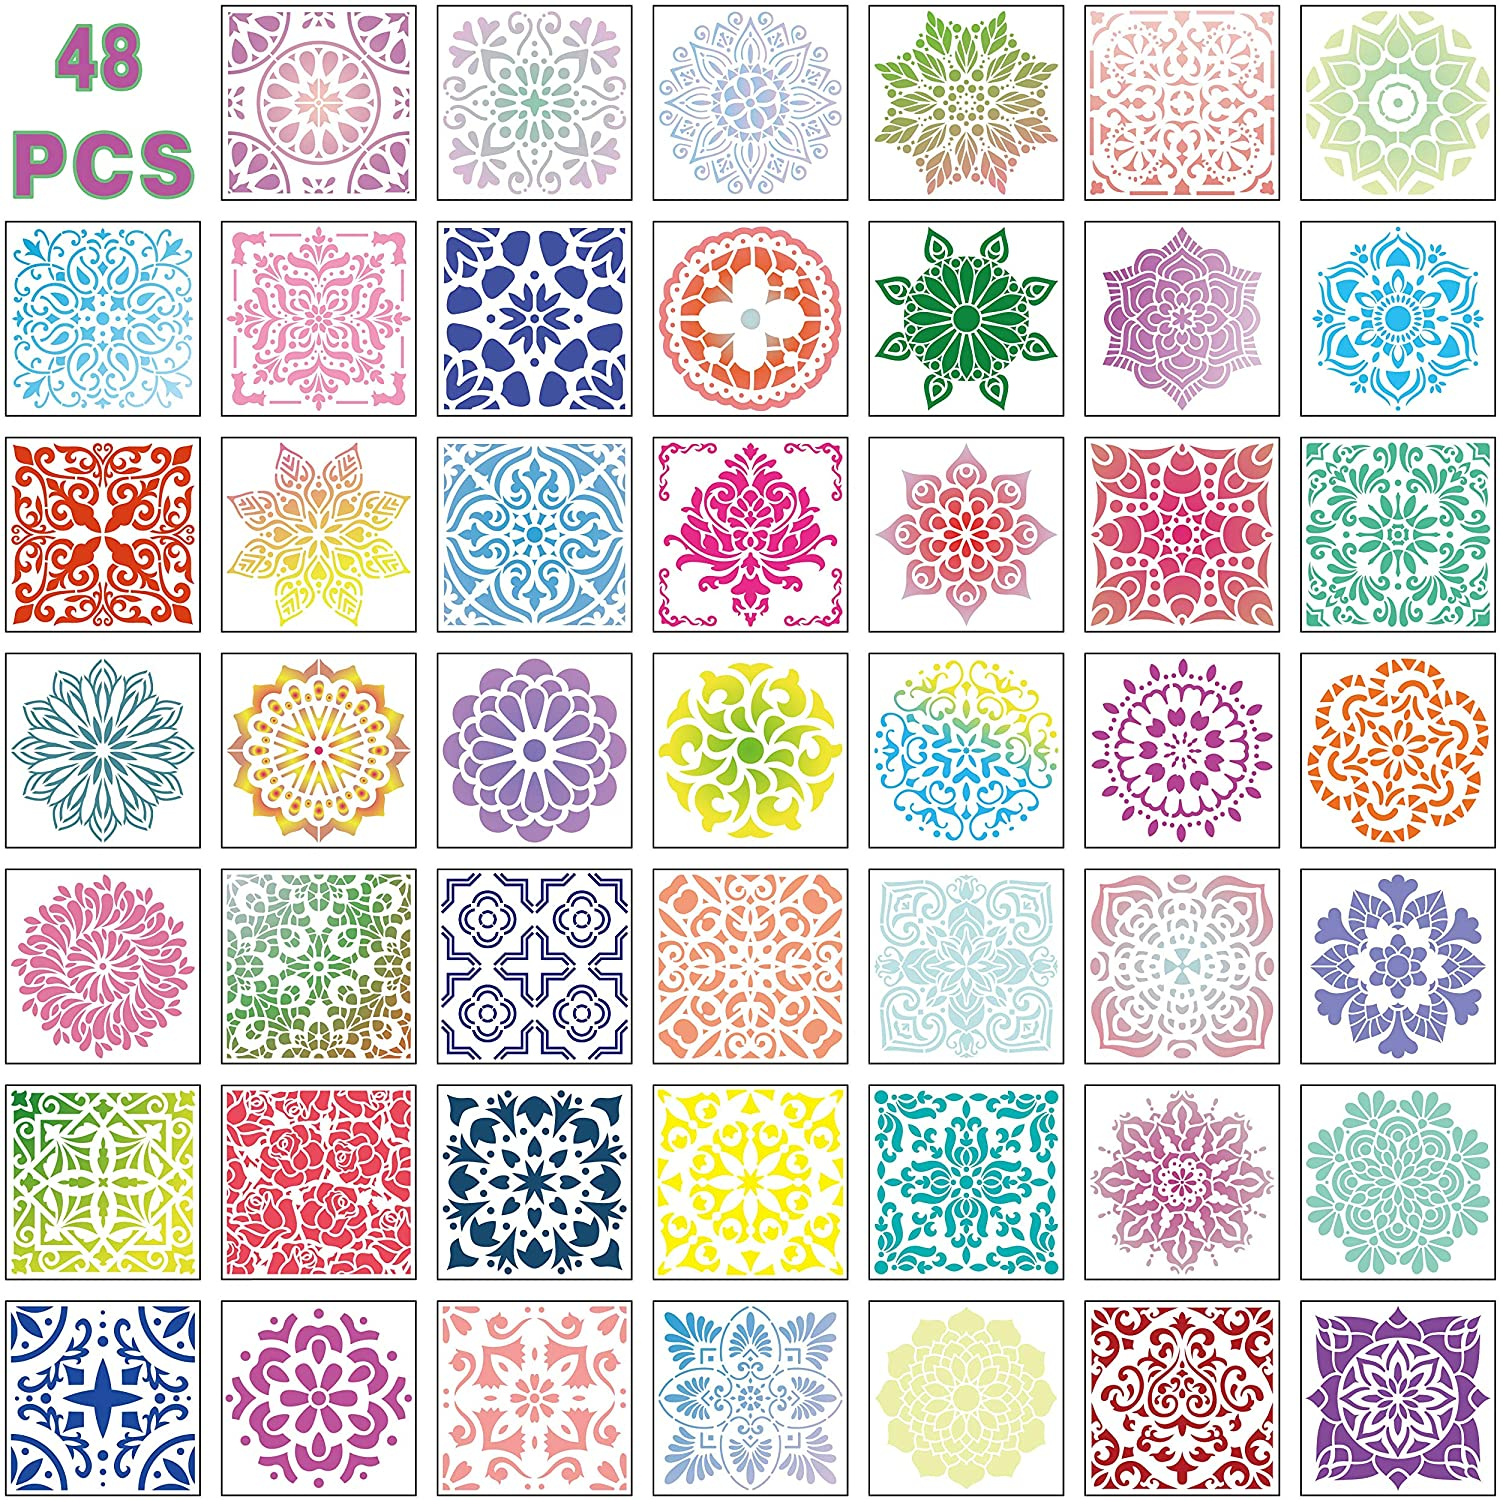 Mandala Painting Drawing Stencils Reusable-Dot Drawing Template Perfect for DIY-Decor, Wood, Airbrush, Rocks,Floor and Walls(5.9X5.9inch)48pack